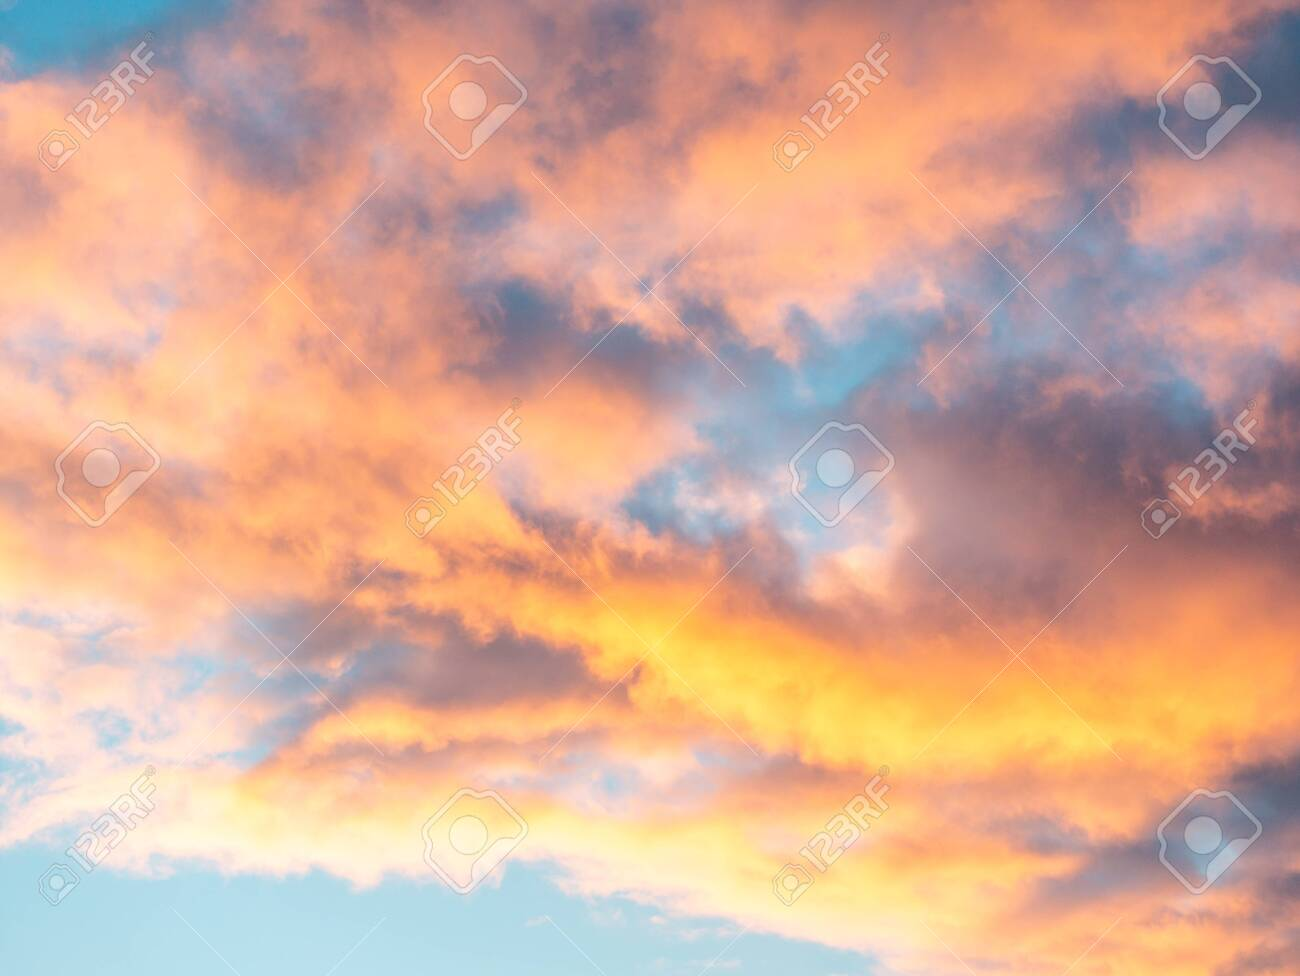 image of red sunset clouds background flat lay abstract stock photo picture and royalty free image image 121541112 image of red sunset clouds background flat lay abstract